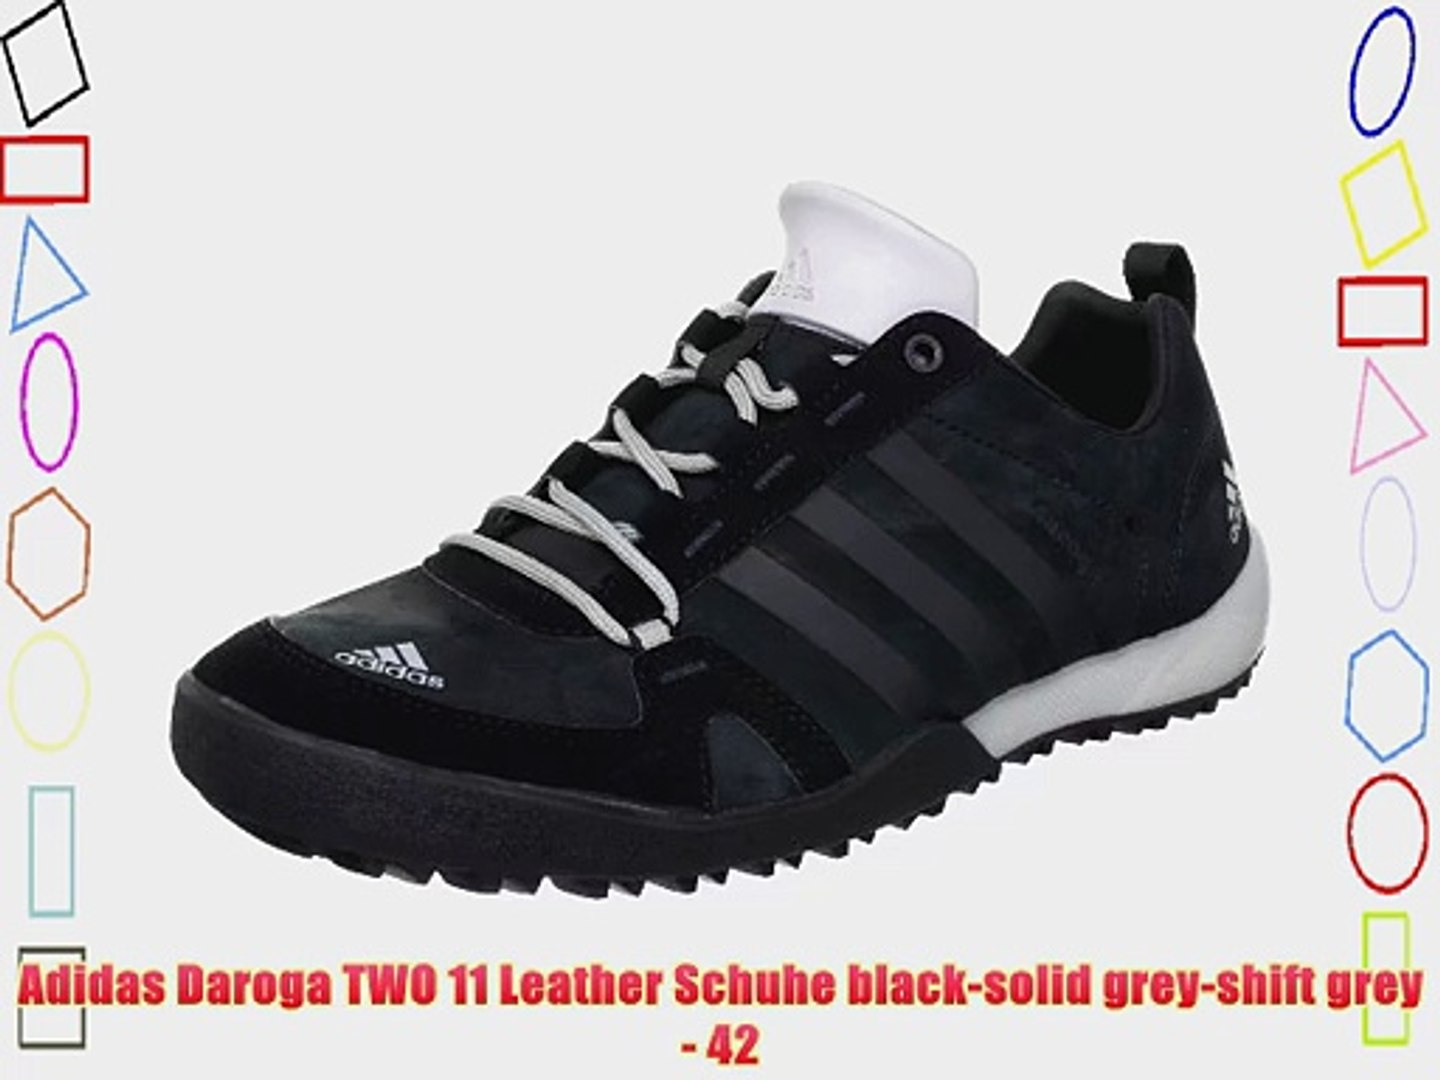 new concept 293c9 cac4c Adidas Daroga TWO 11 Leather Schuhe black-solid grey-shift grey - 42